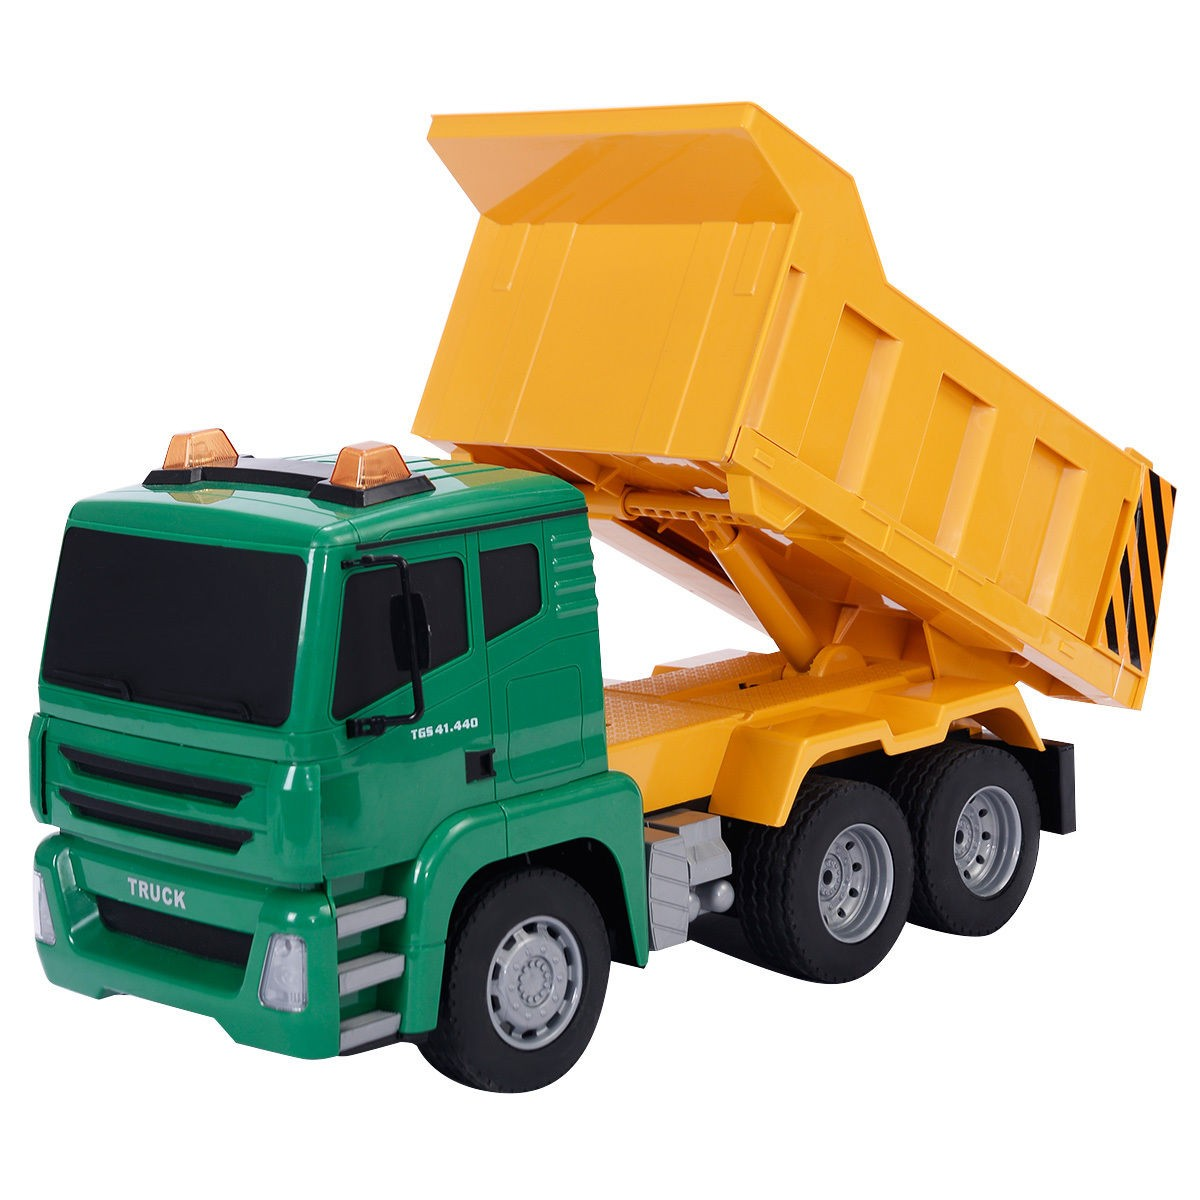 1200x1200 118 5ch Remote Control Rc Construction Dump Truck